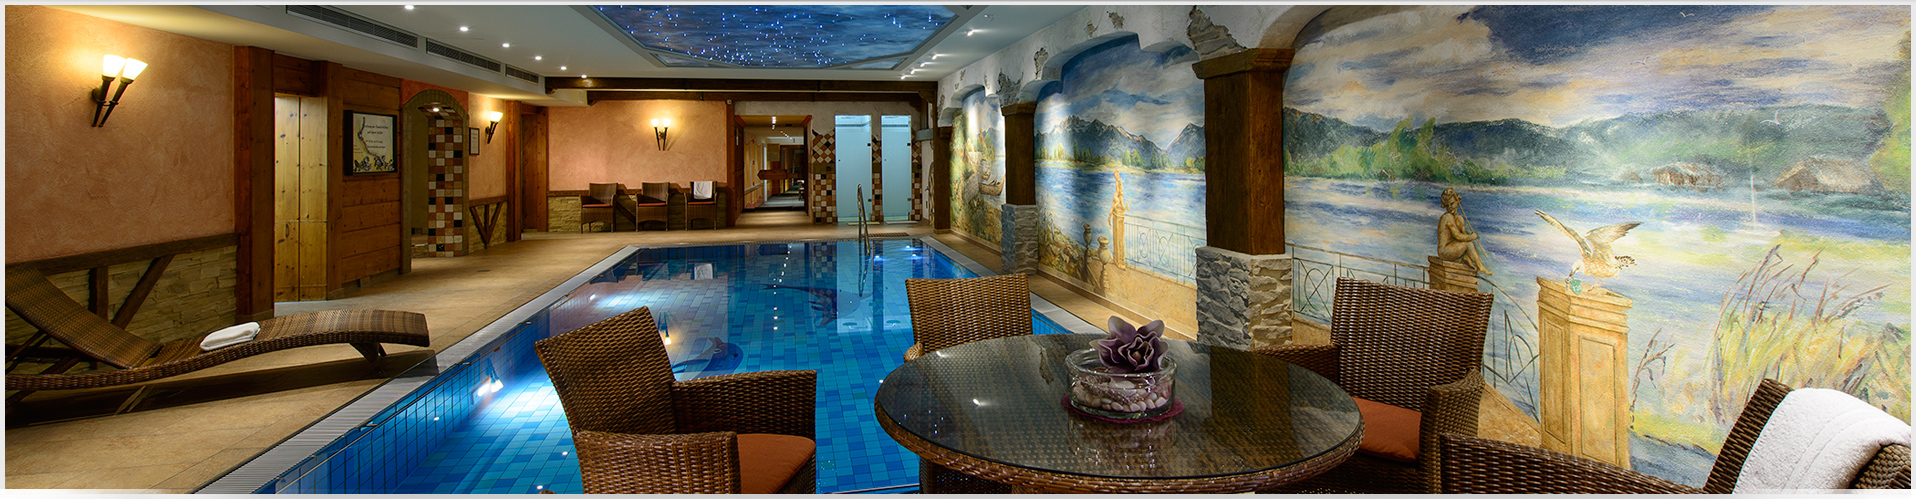 Sterne Hotels Am Chiemsee